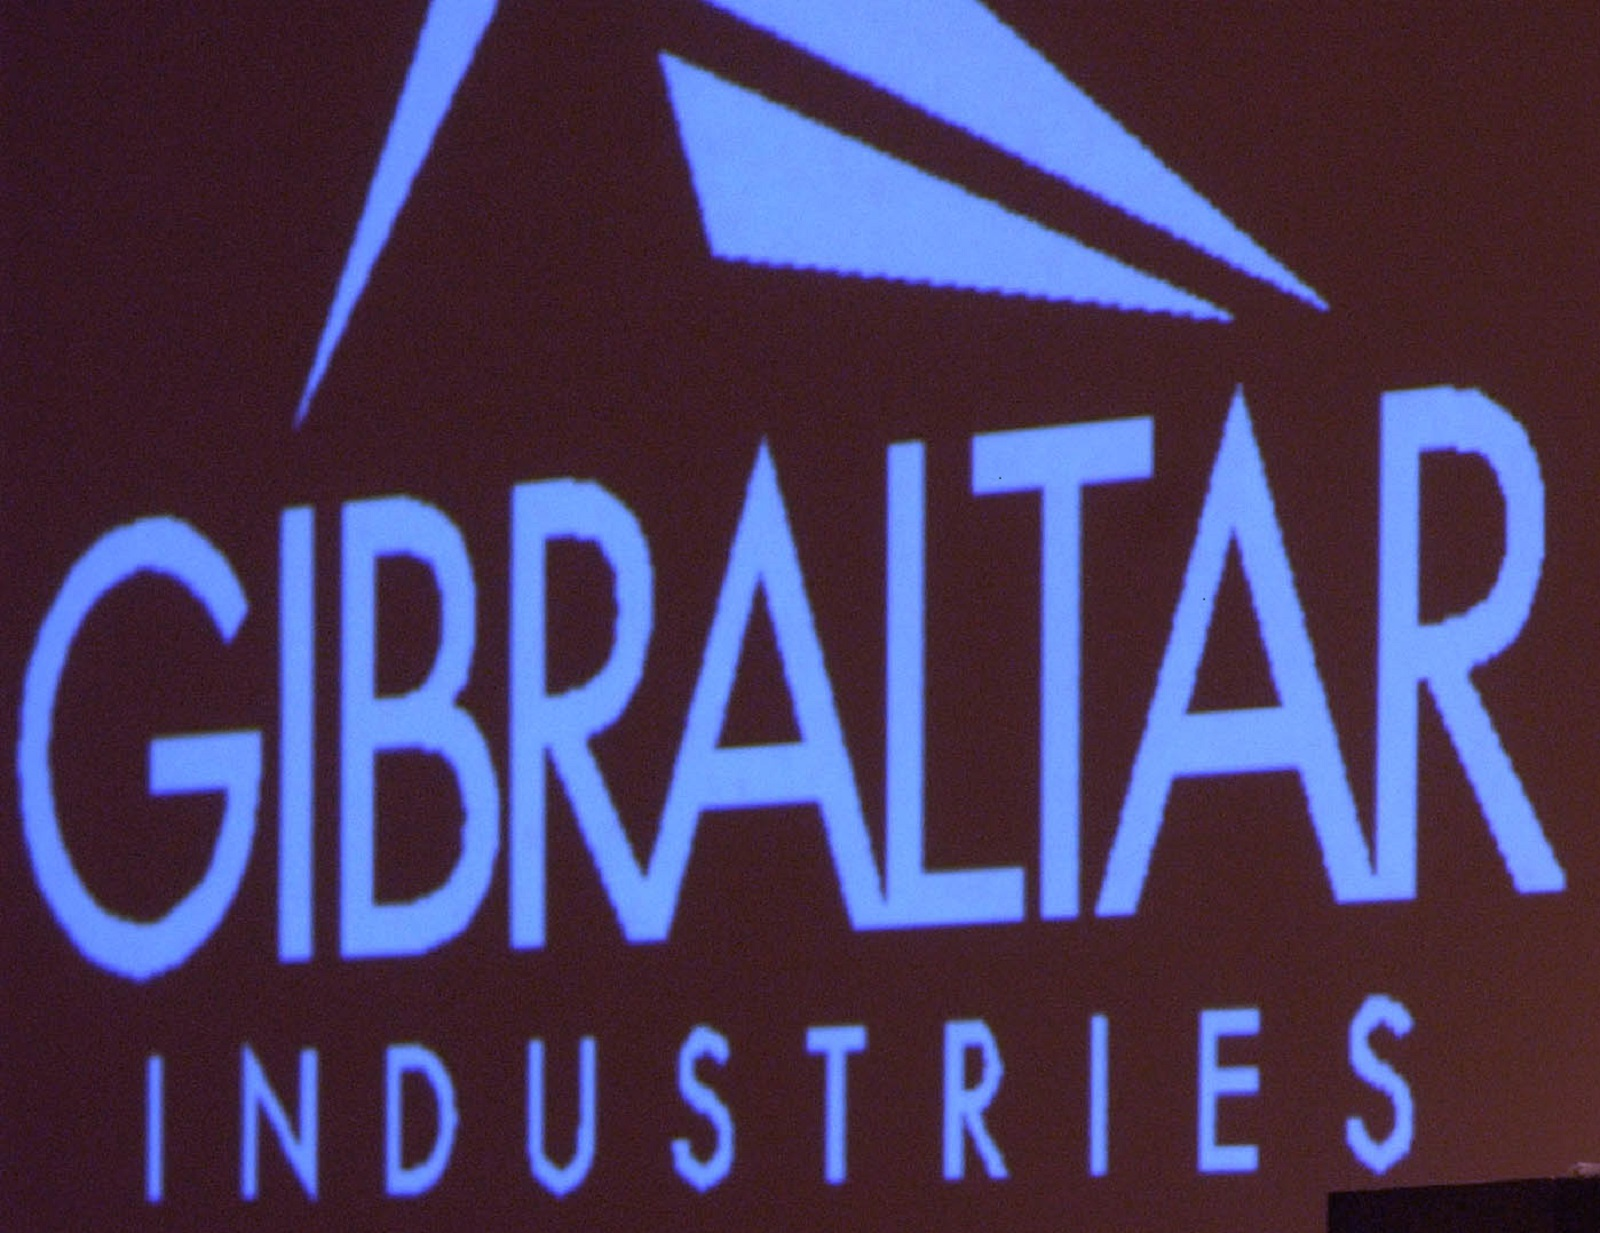 Gibraltar Industries, a building products manufacturer, is based in Hamburg. (Buffalo News file photo)